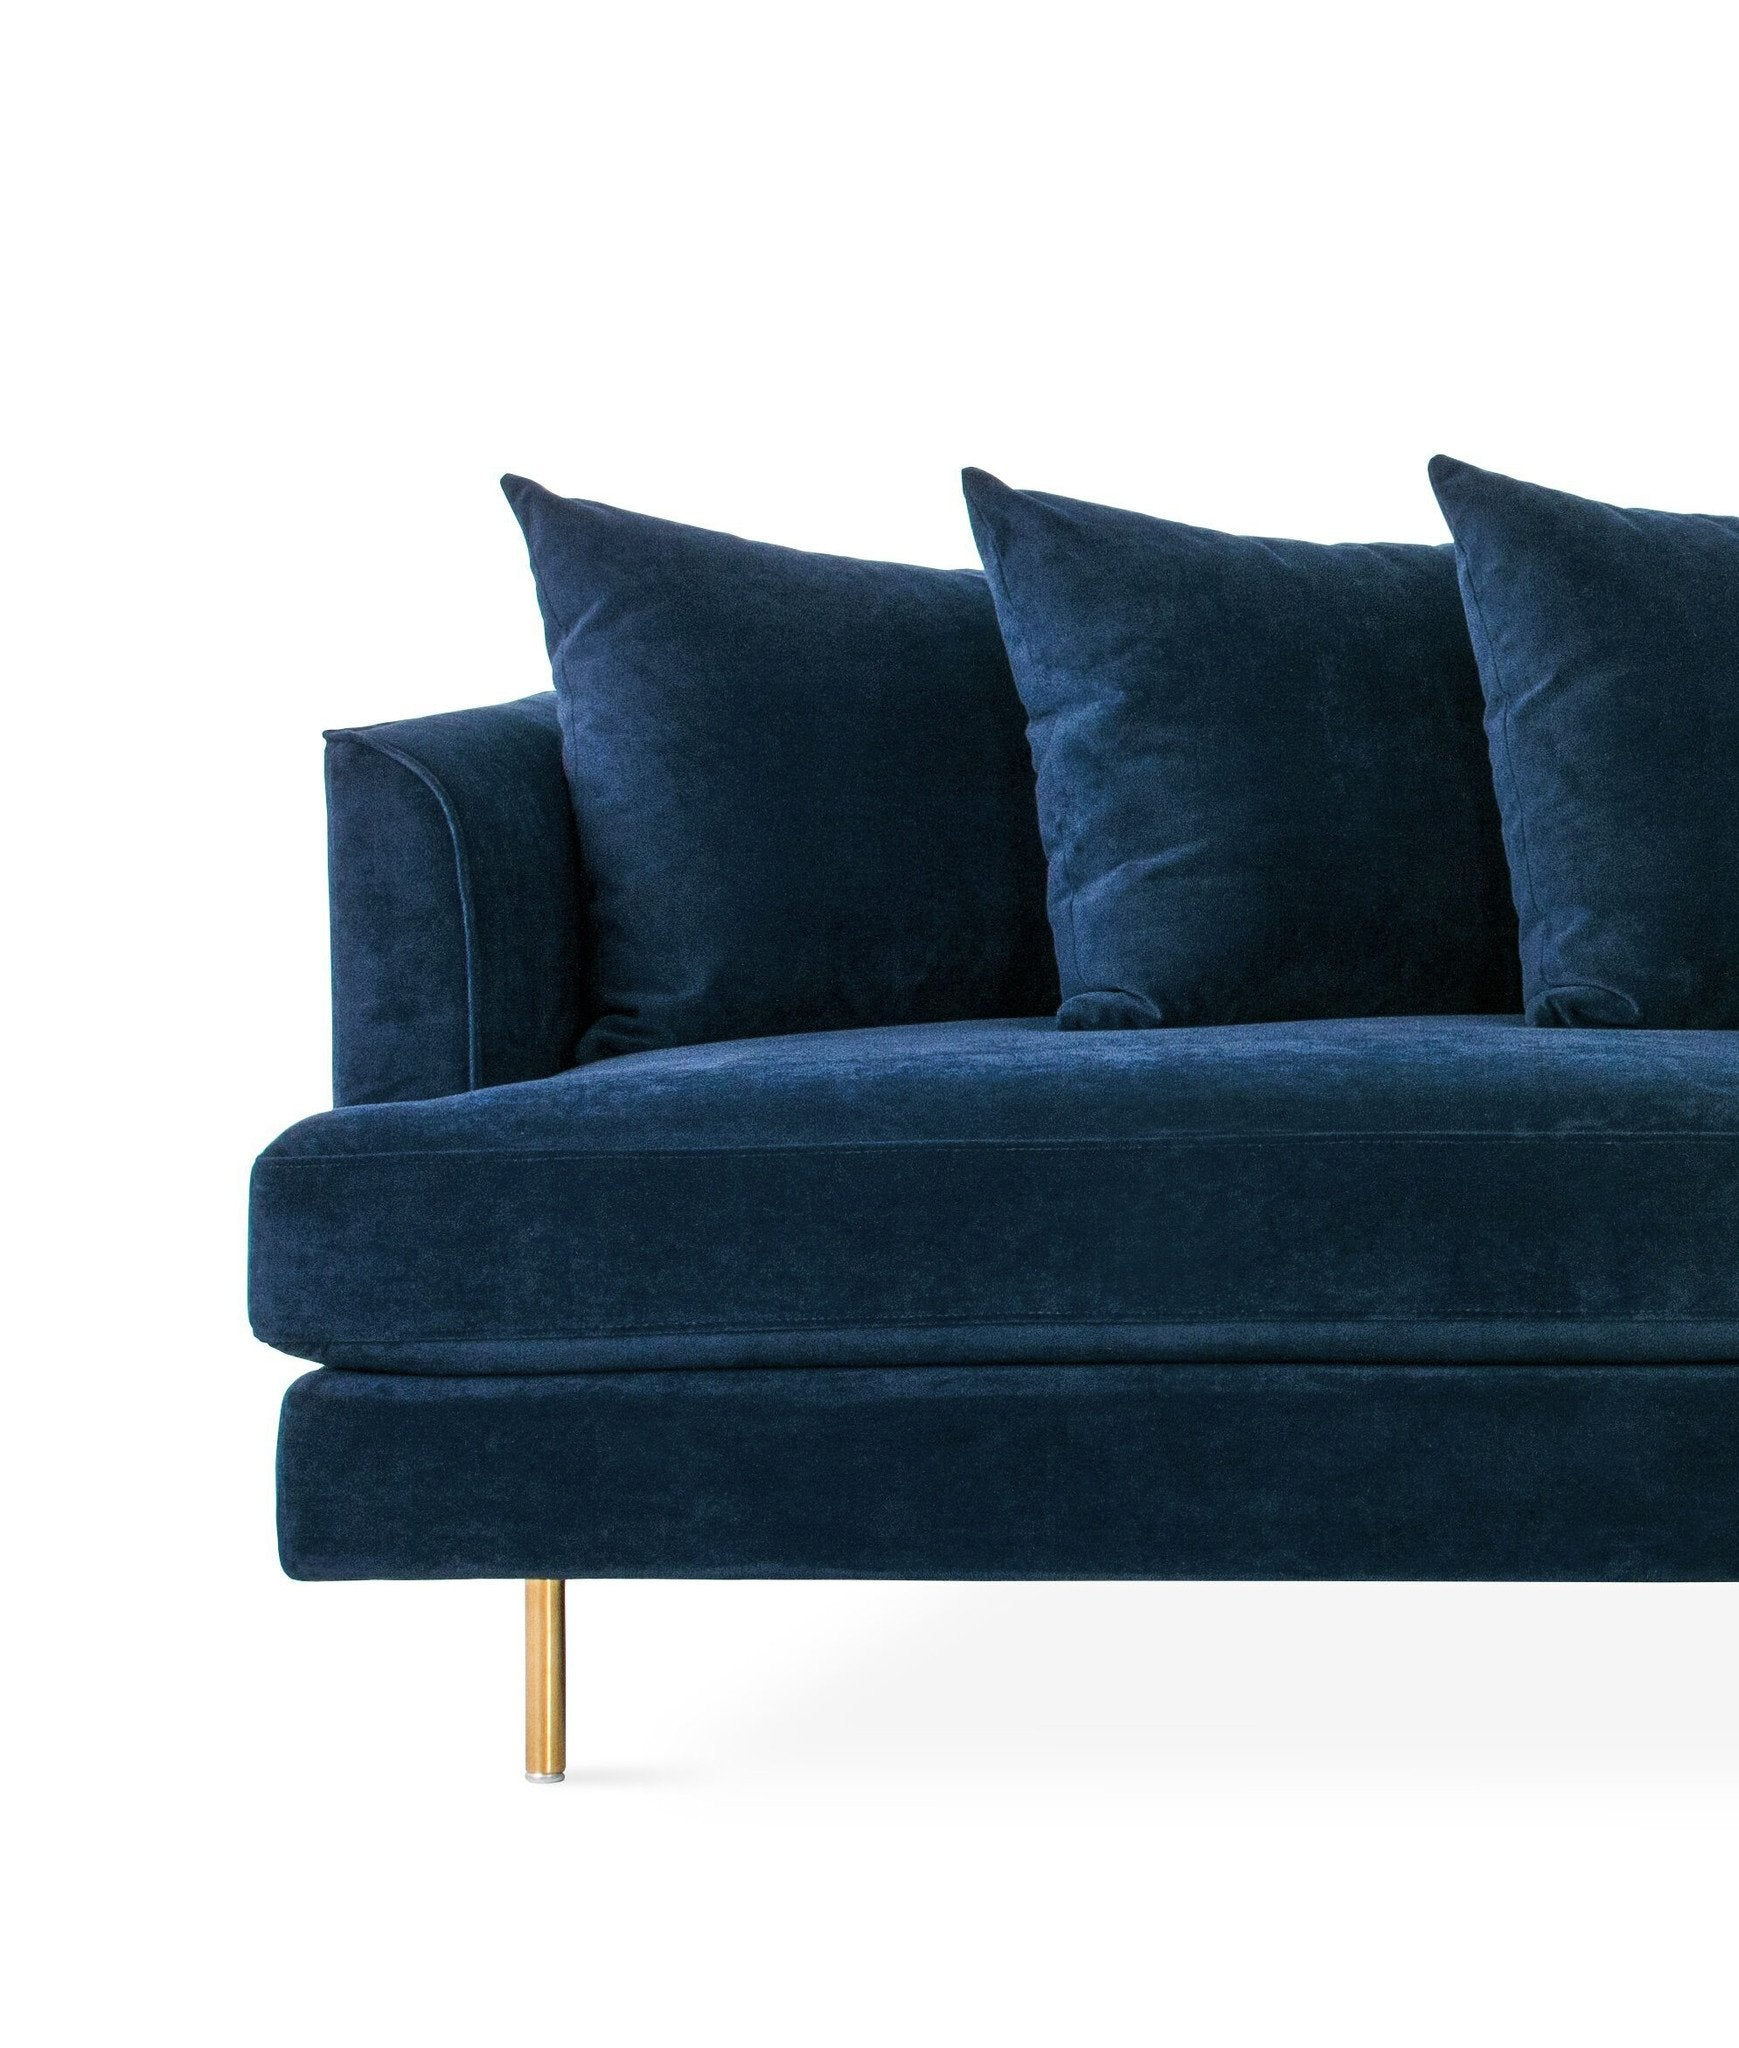 Margot midnight blue velvet sofa